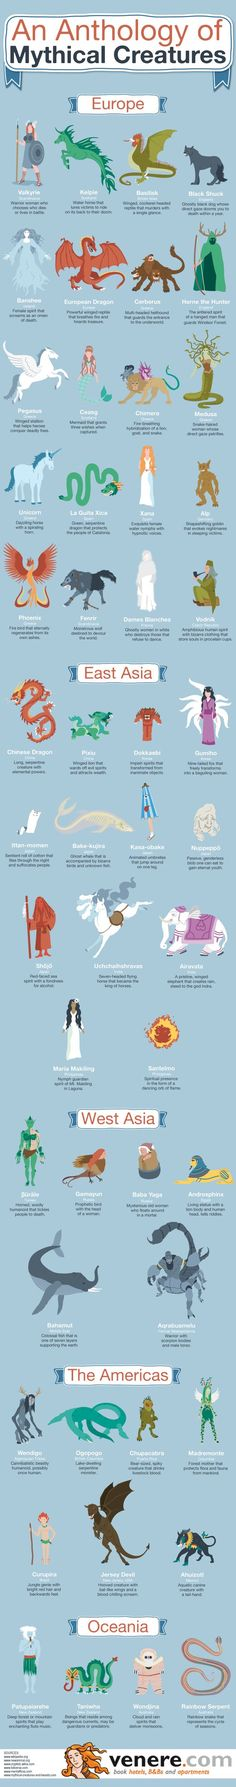 Here's a Handy Little Guide to the World's Mythical Creatures: